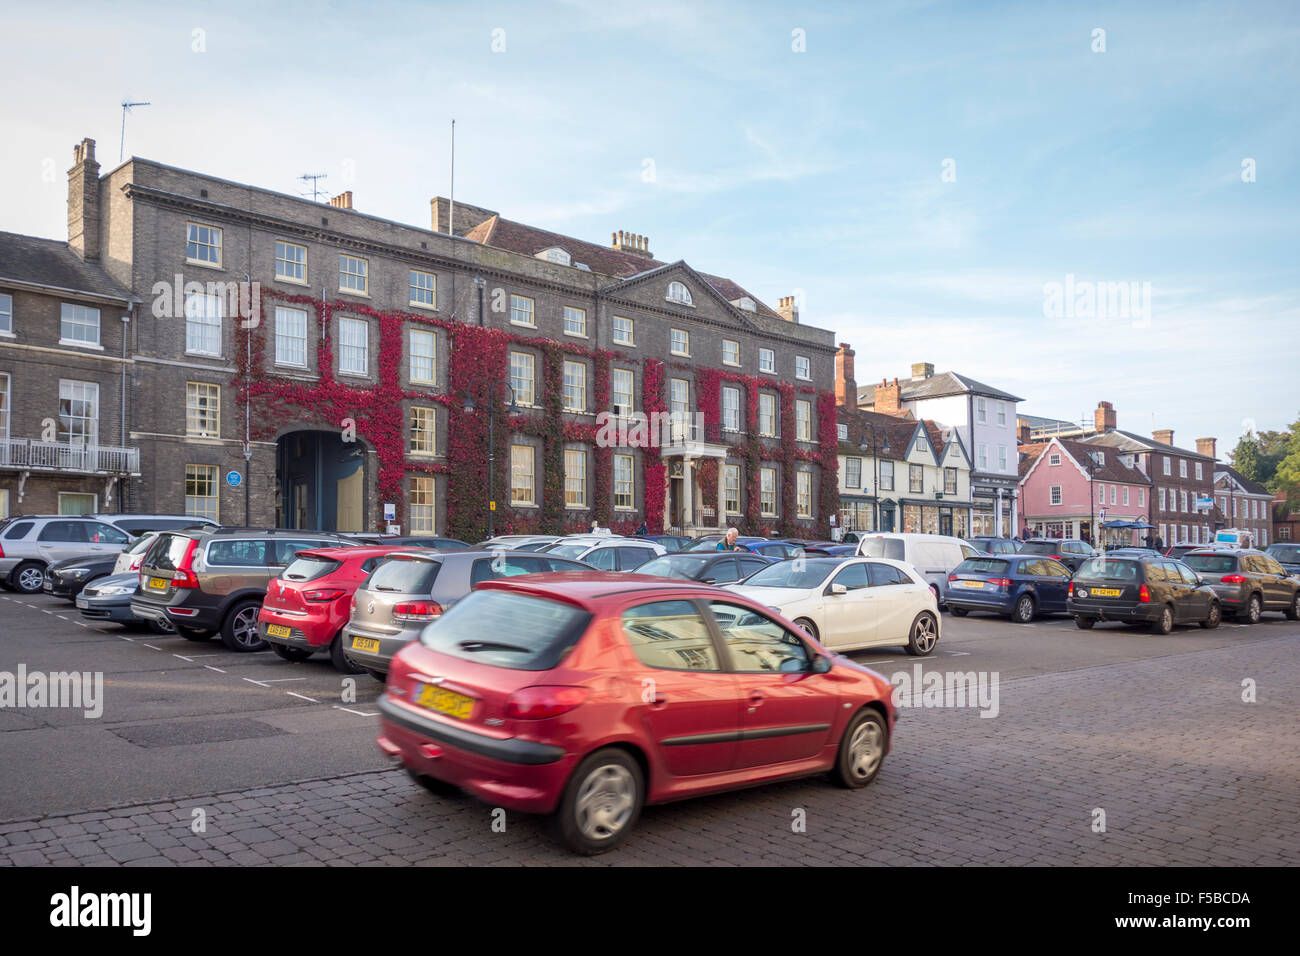 The Angel Hotel, Bury St Edmunds - Stock Image